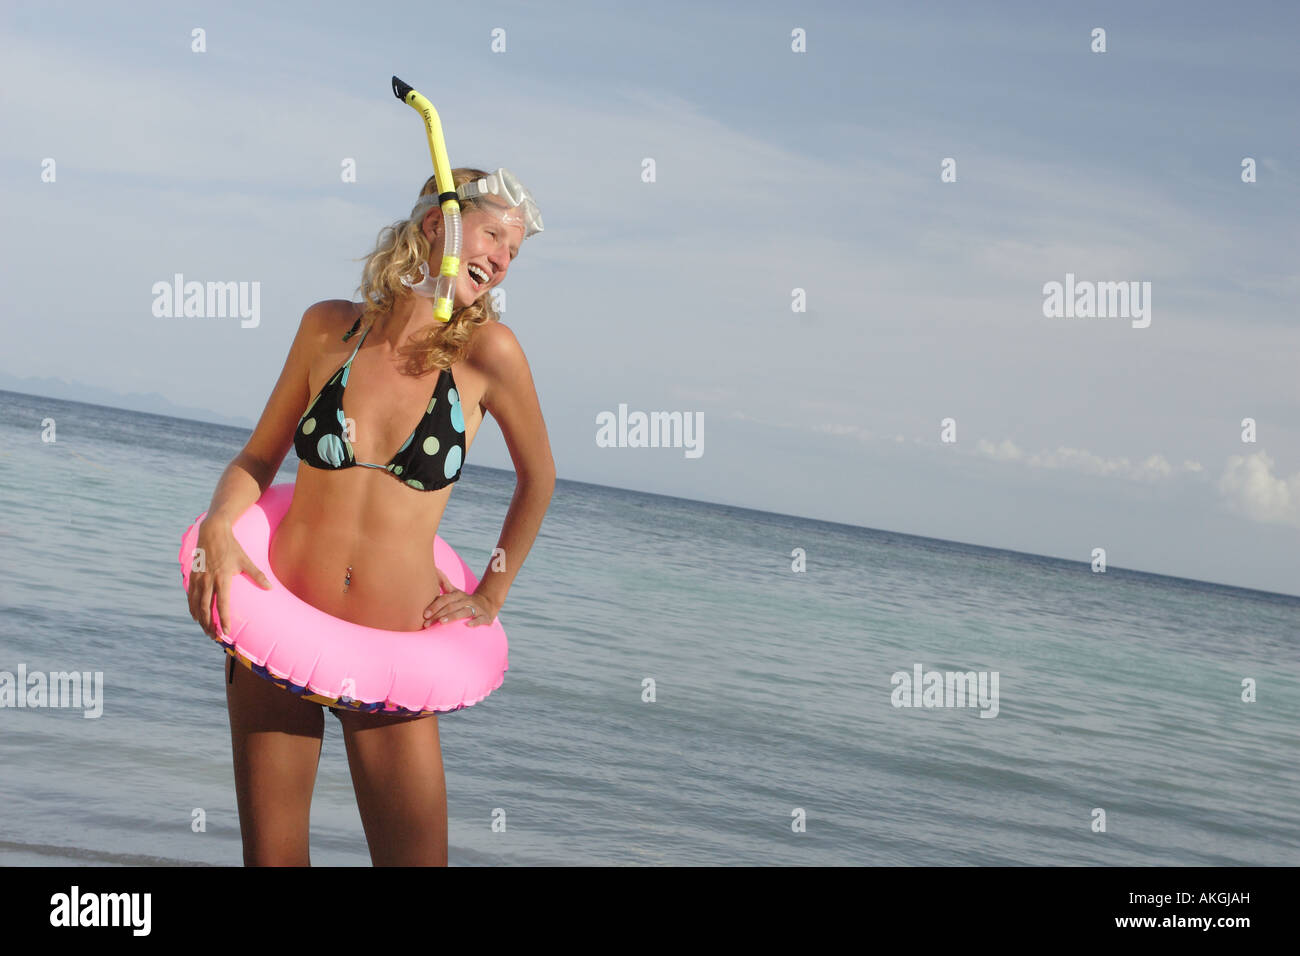 Woman in a bikini on the beach laughing with a snorkel, mask and inflatable ring. - Stock Image